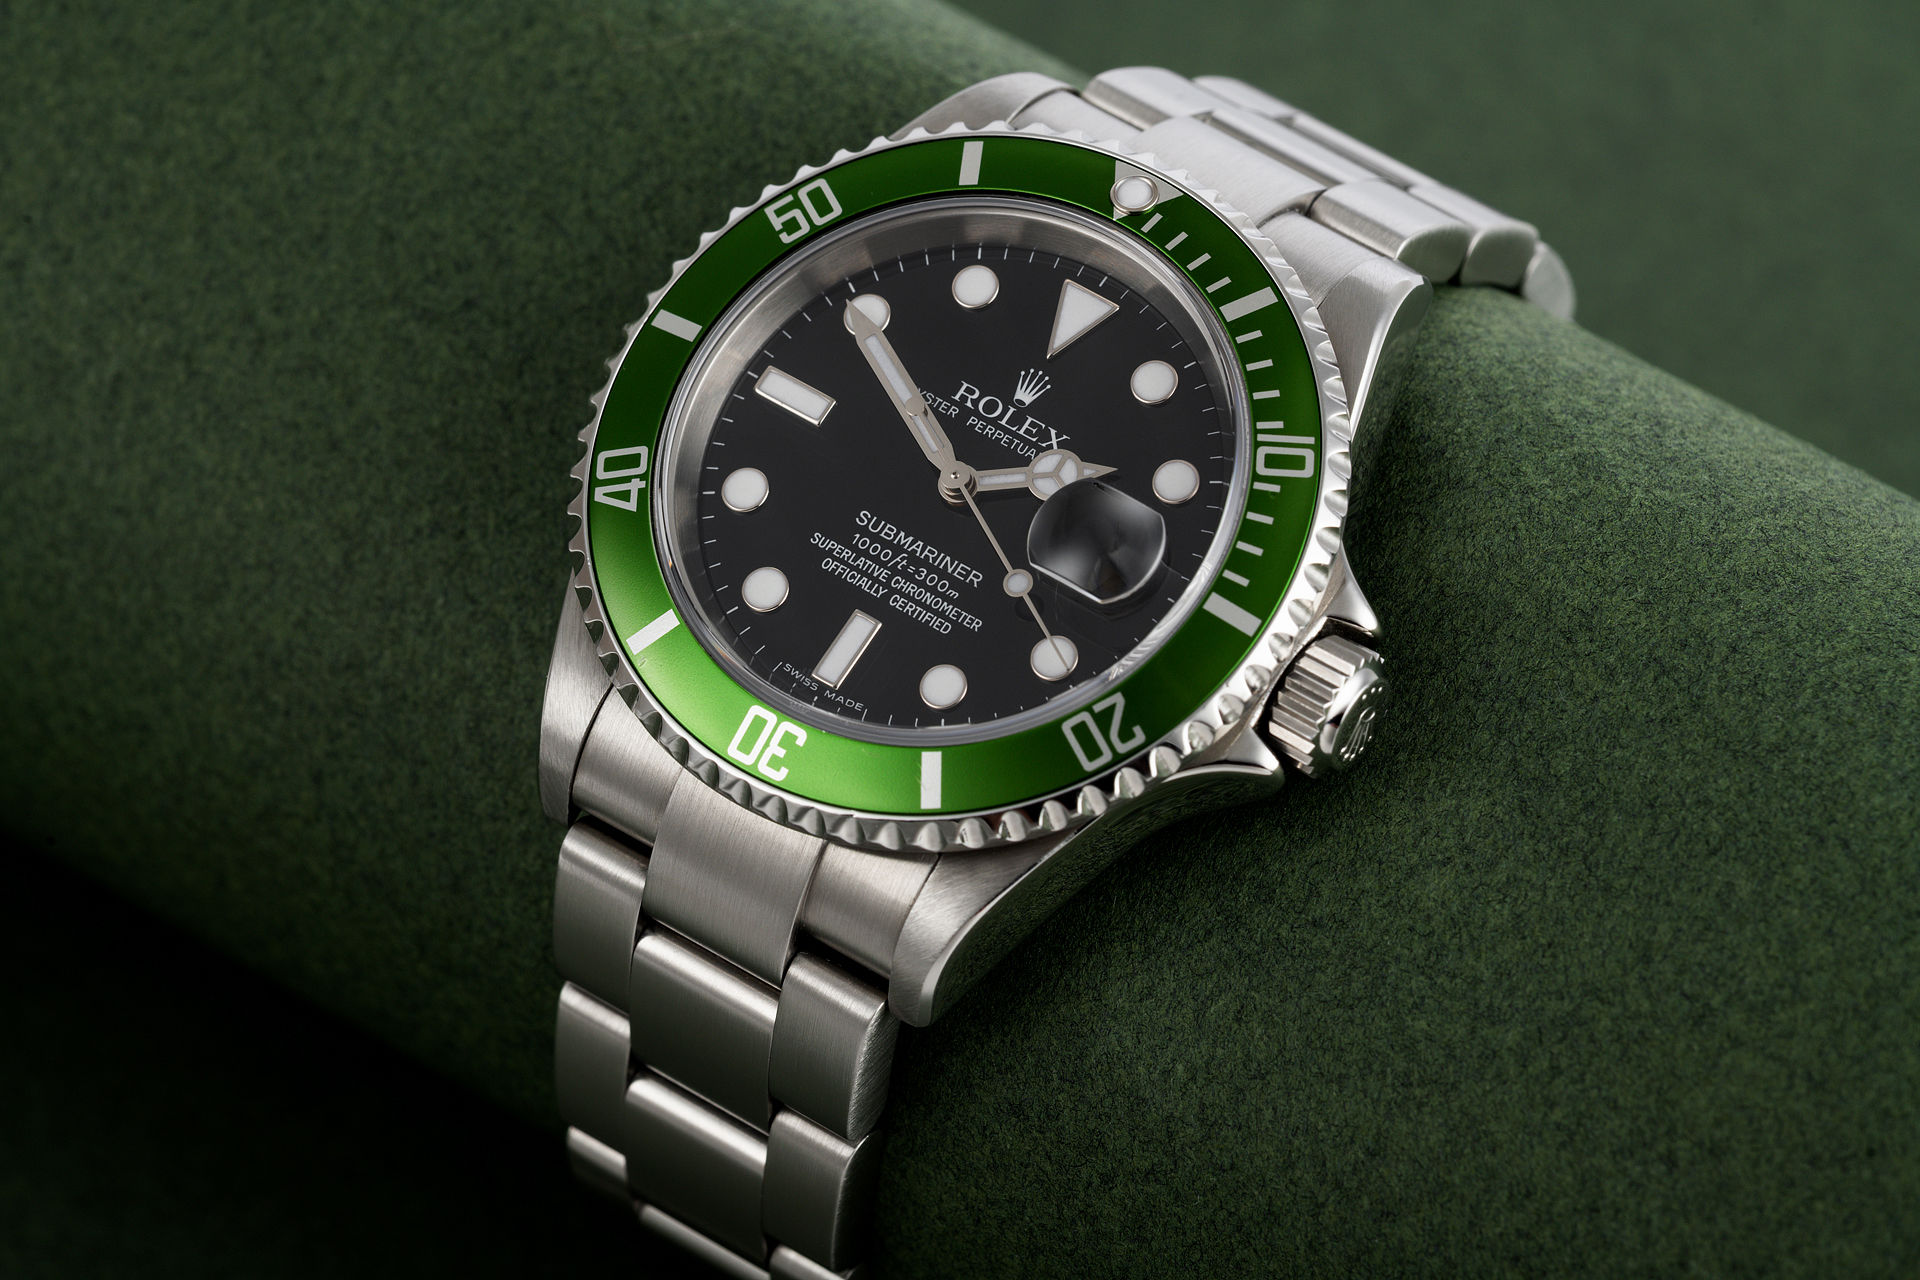 ref 16610LV | 50th Anniversary 'Full Set' | Rolex Submariner Date